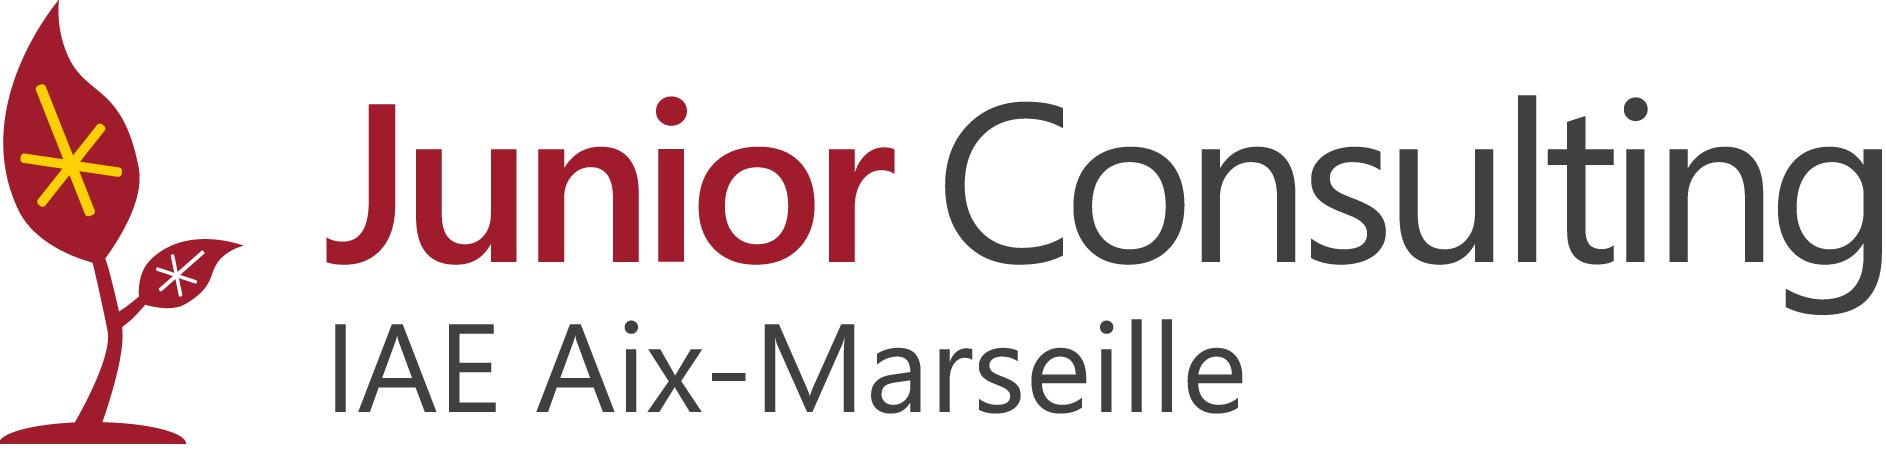 Junior Consulting IAE Aix-Marseille